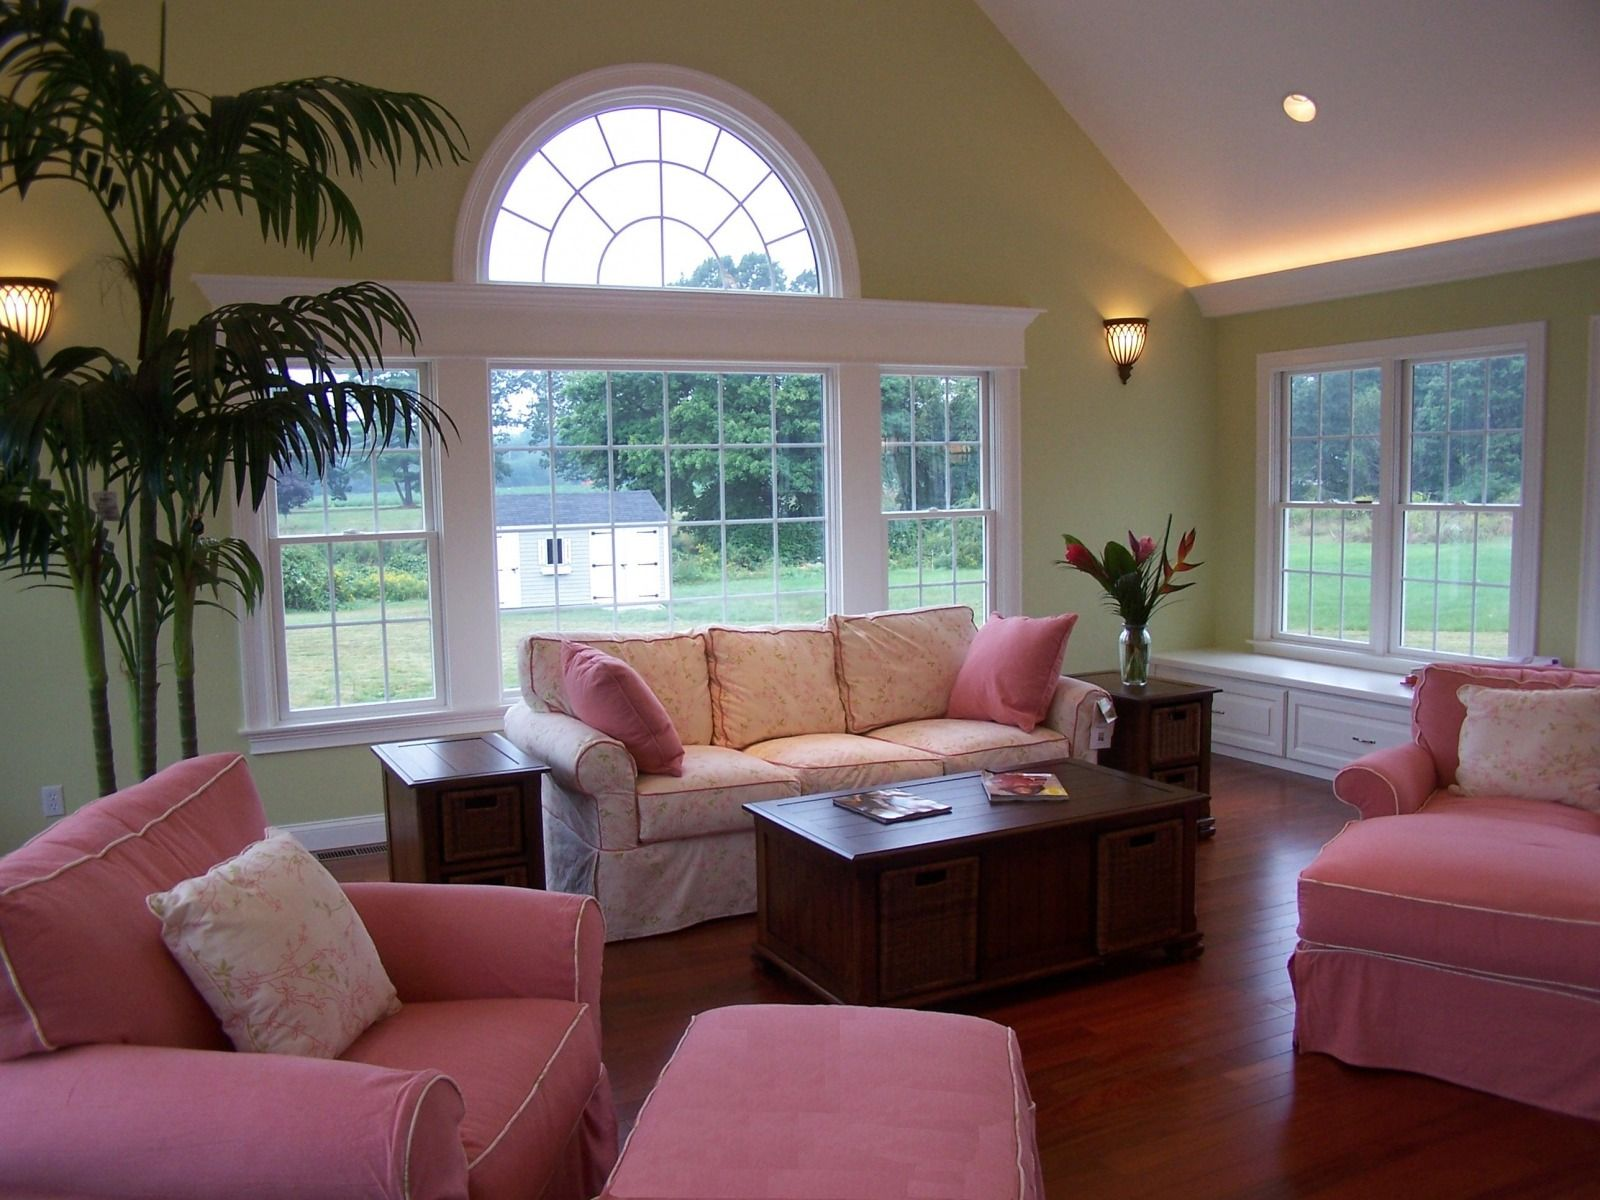 Window ideas for family room  family room additions  harborhouse design llc  portfolio  family